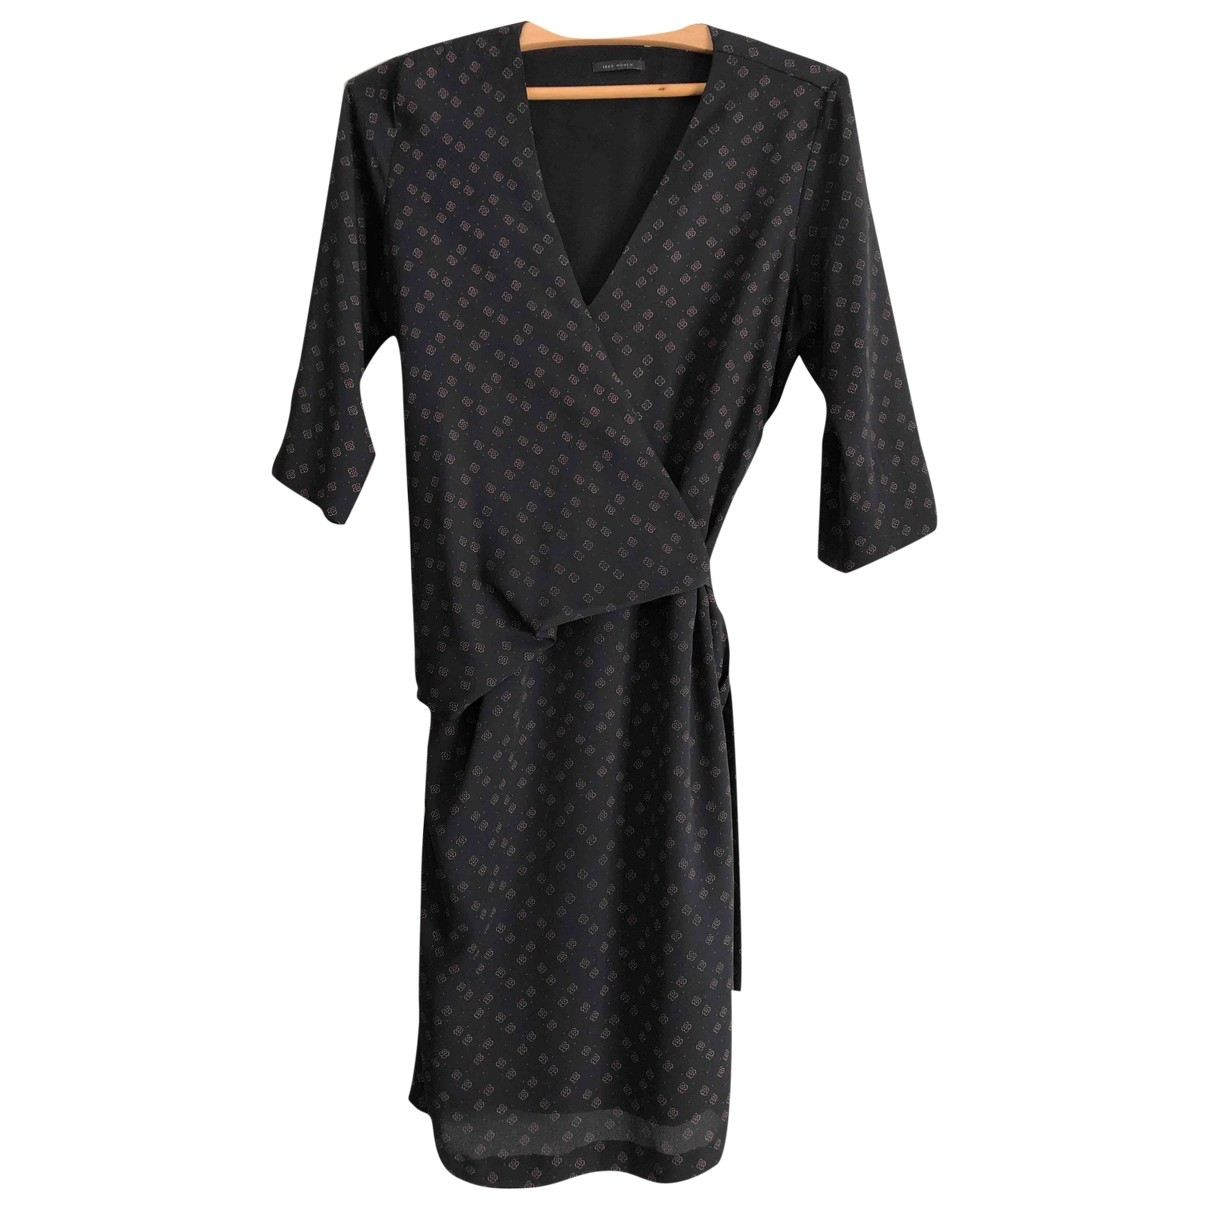 Ikks \N Black dress for Women 38 FR